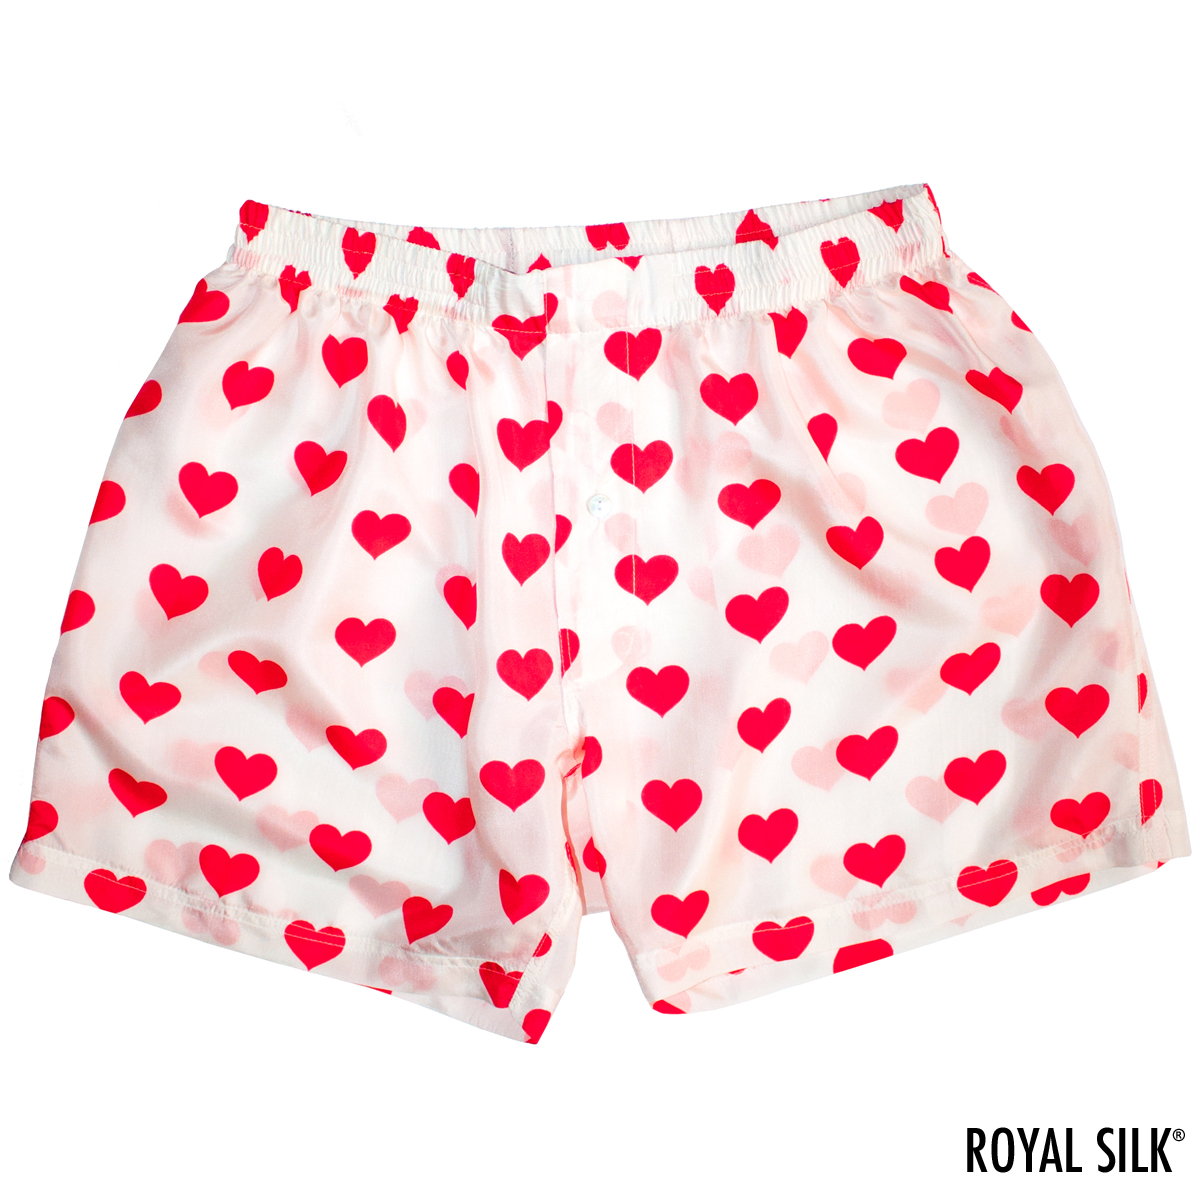 Express your self with our extensive collection of Hearts Boxer Shorts. Our boxer shorts are made of % lightweight cotton for breathable comfort.